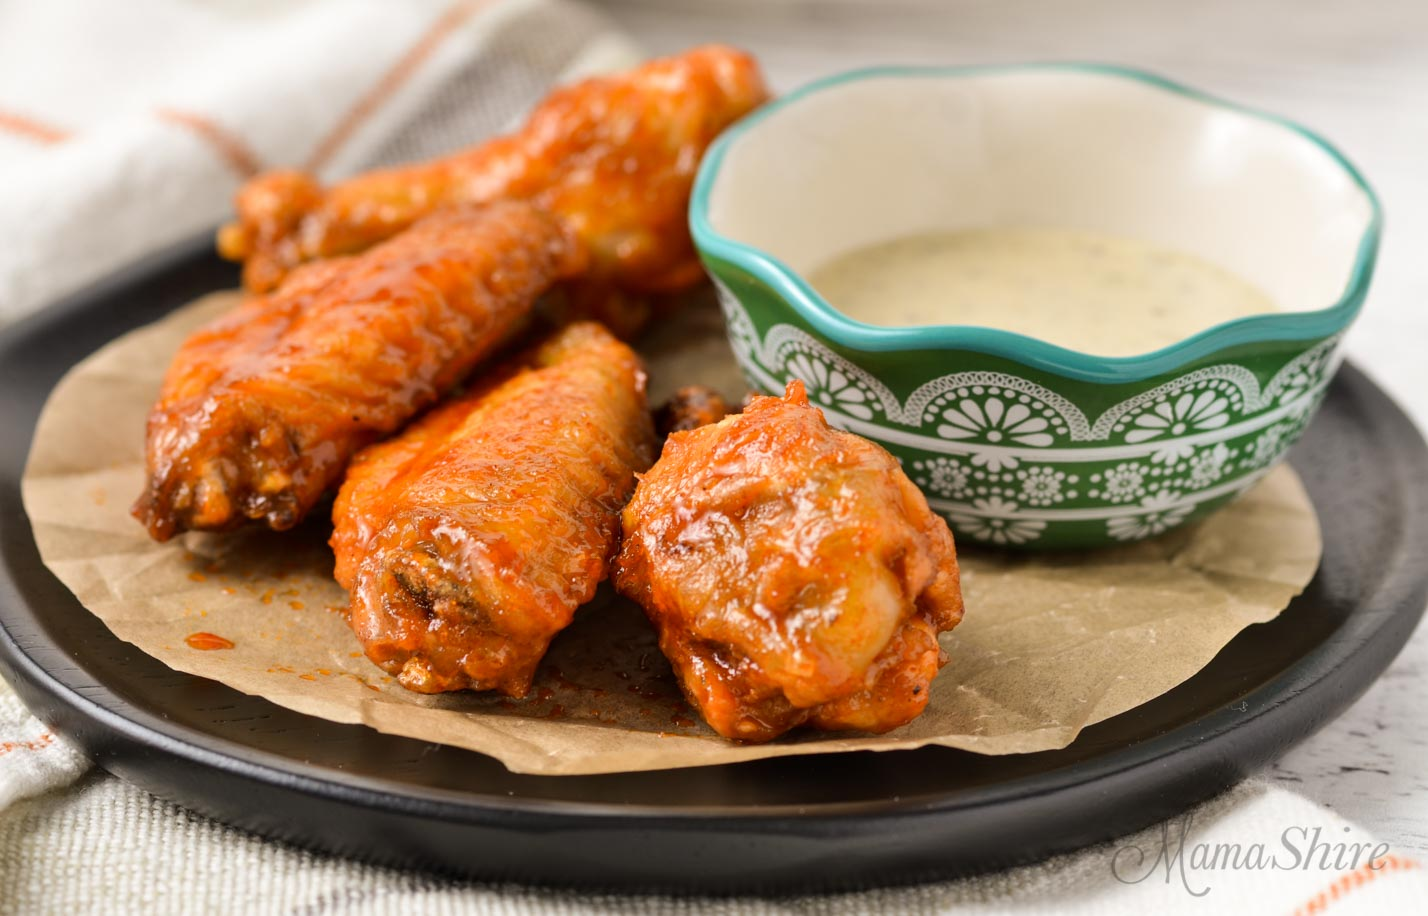 A plate of Korean chicken wings with a small bowl of ranch dressing.